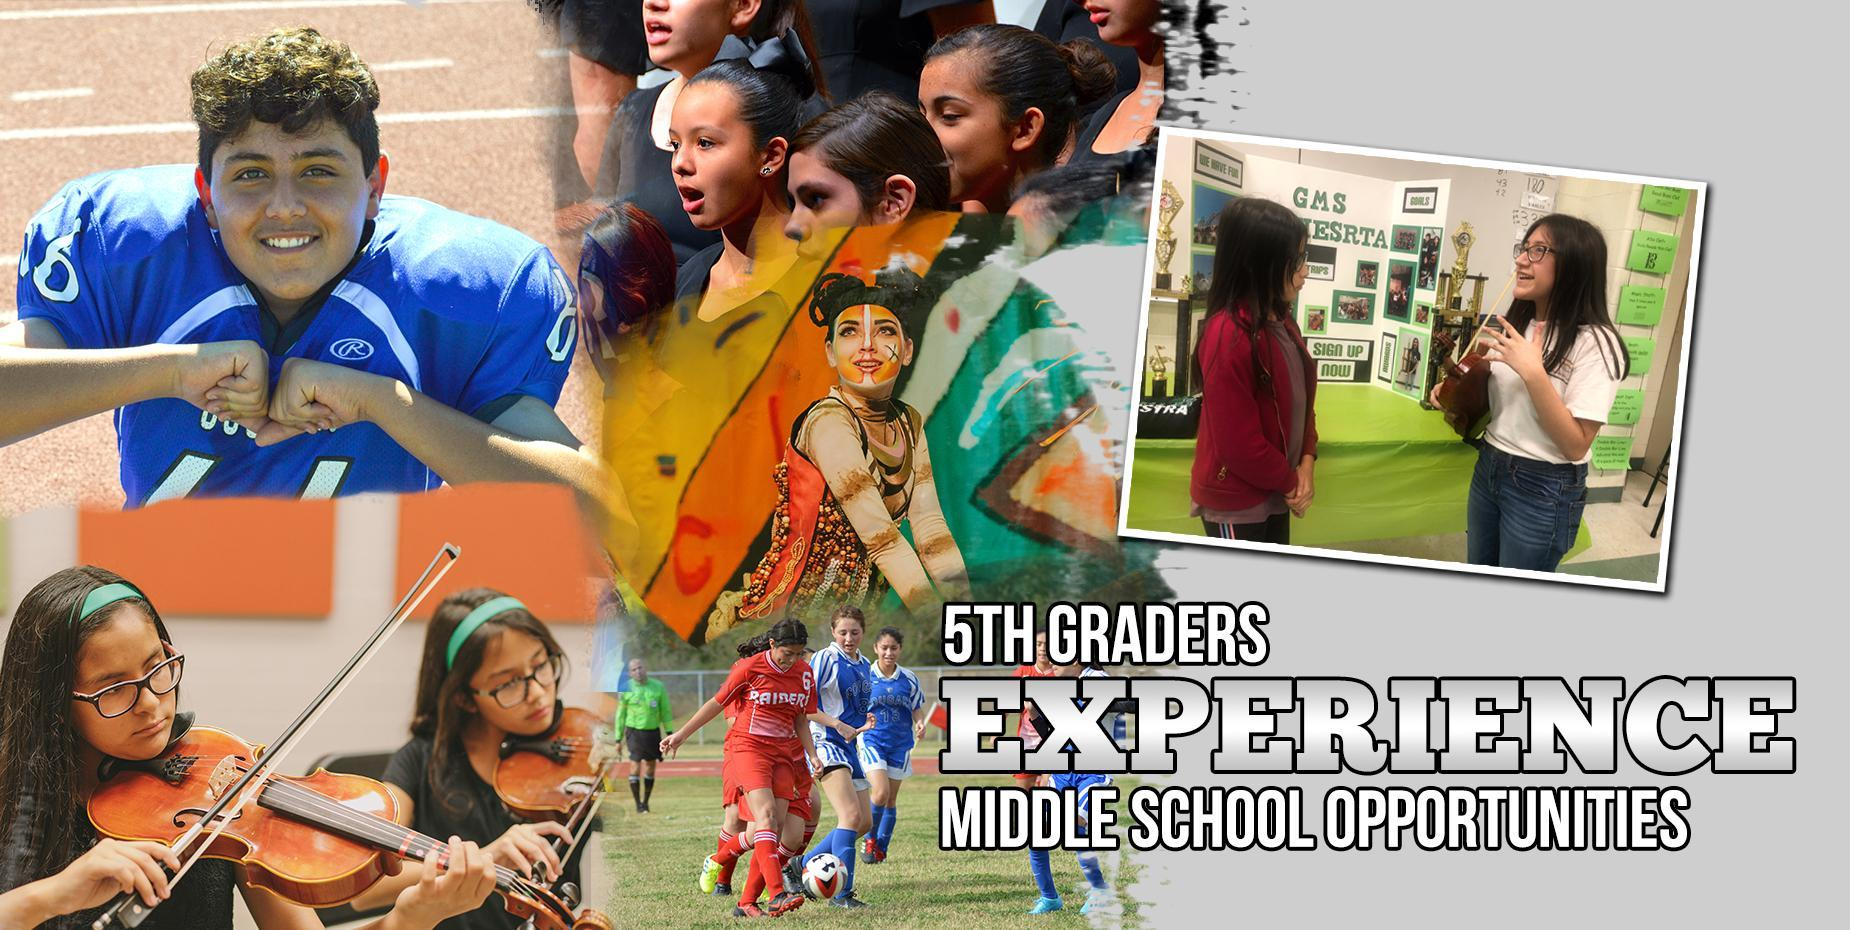 5th graders experience middle school opportunities